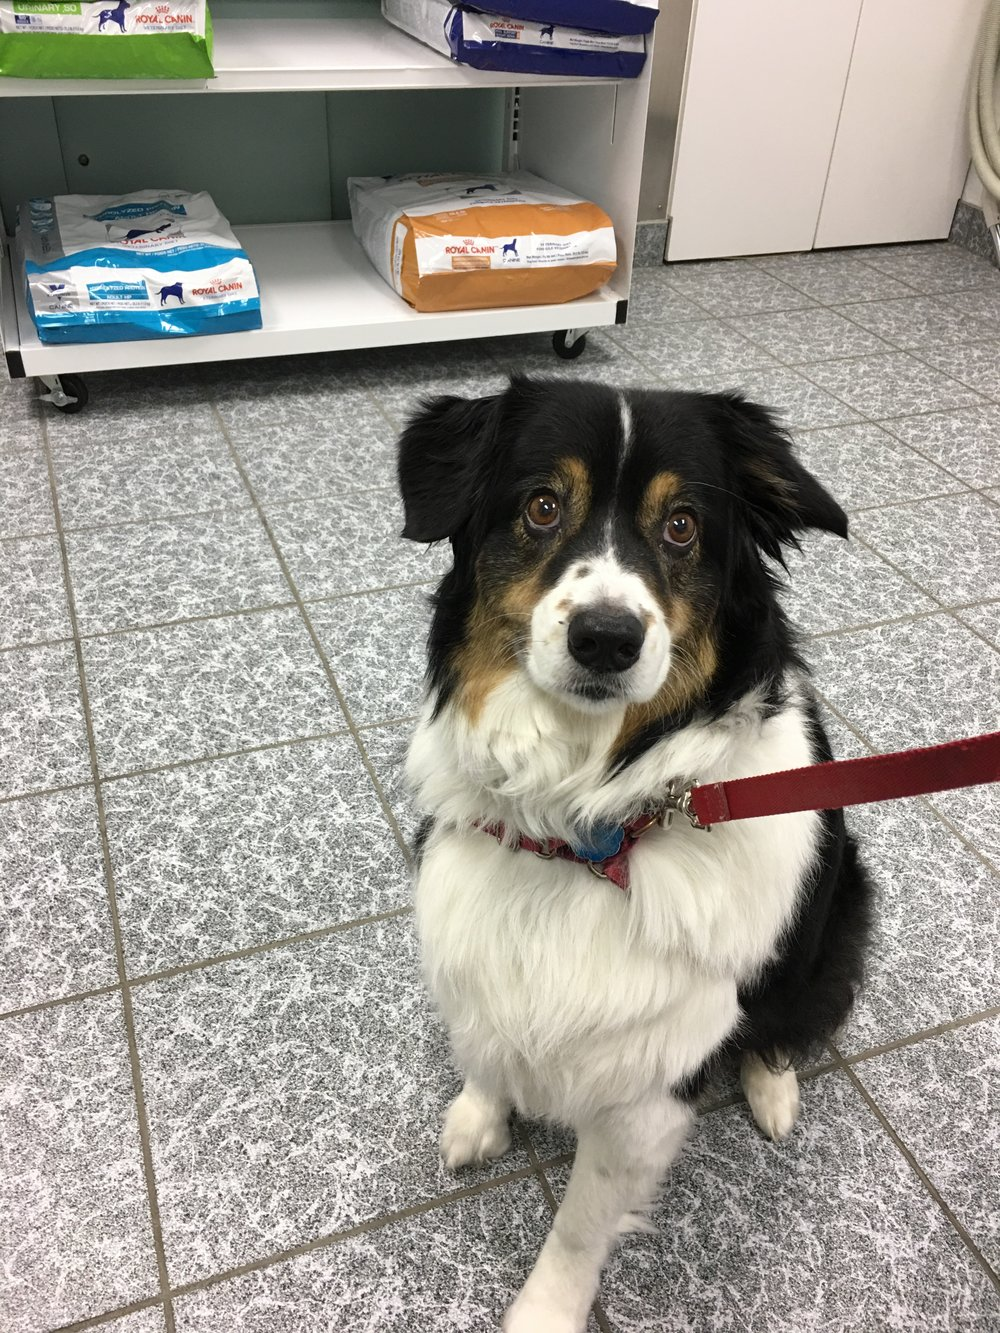 At the vet when they thought she might have kennel cough. She didn't even act sick. She had lost weight unexplainably. Now we know why. Cancer sucks!